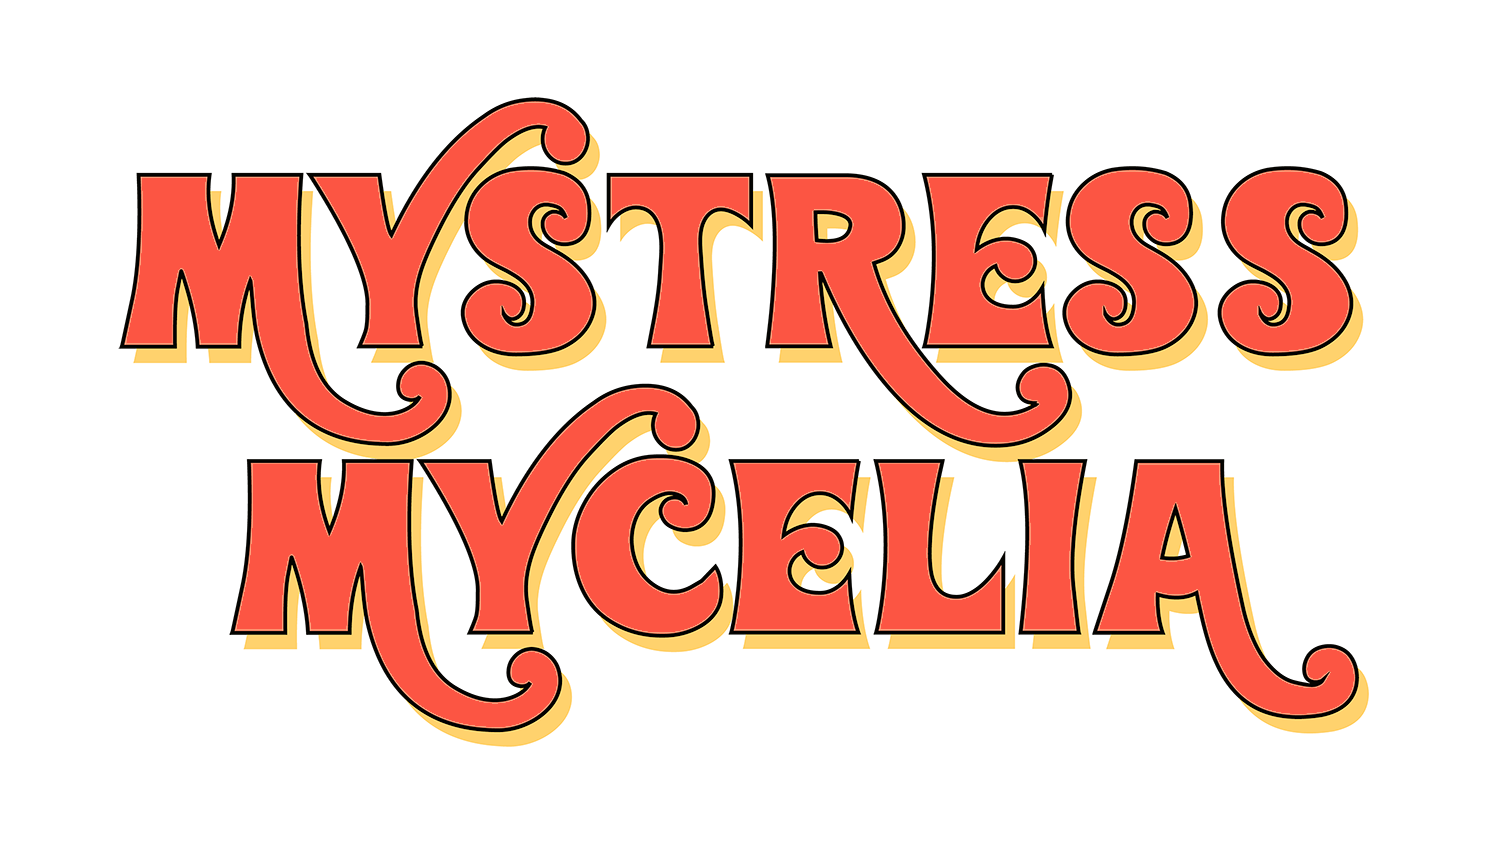 Mystress Mycelia